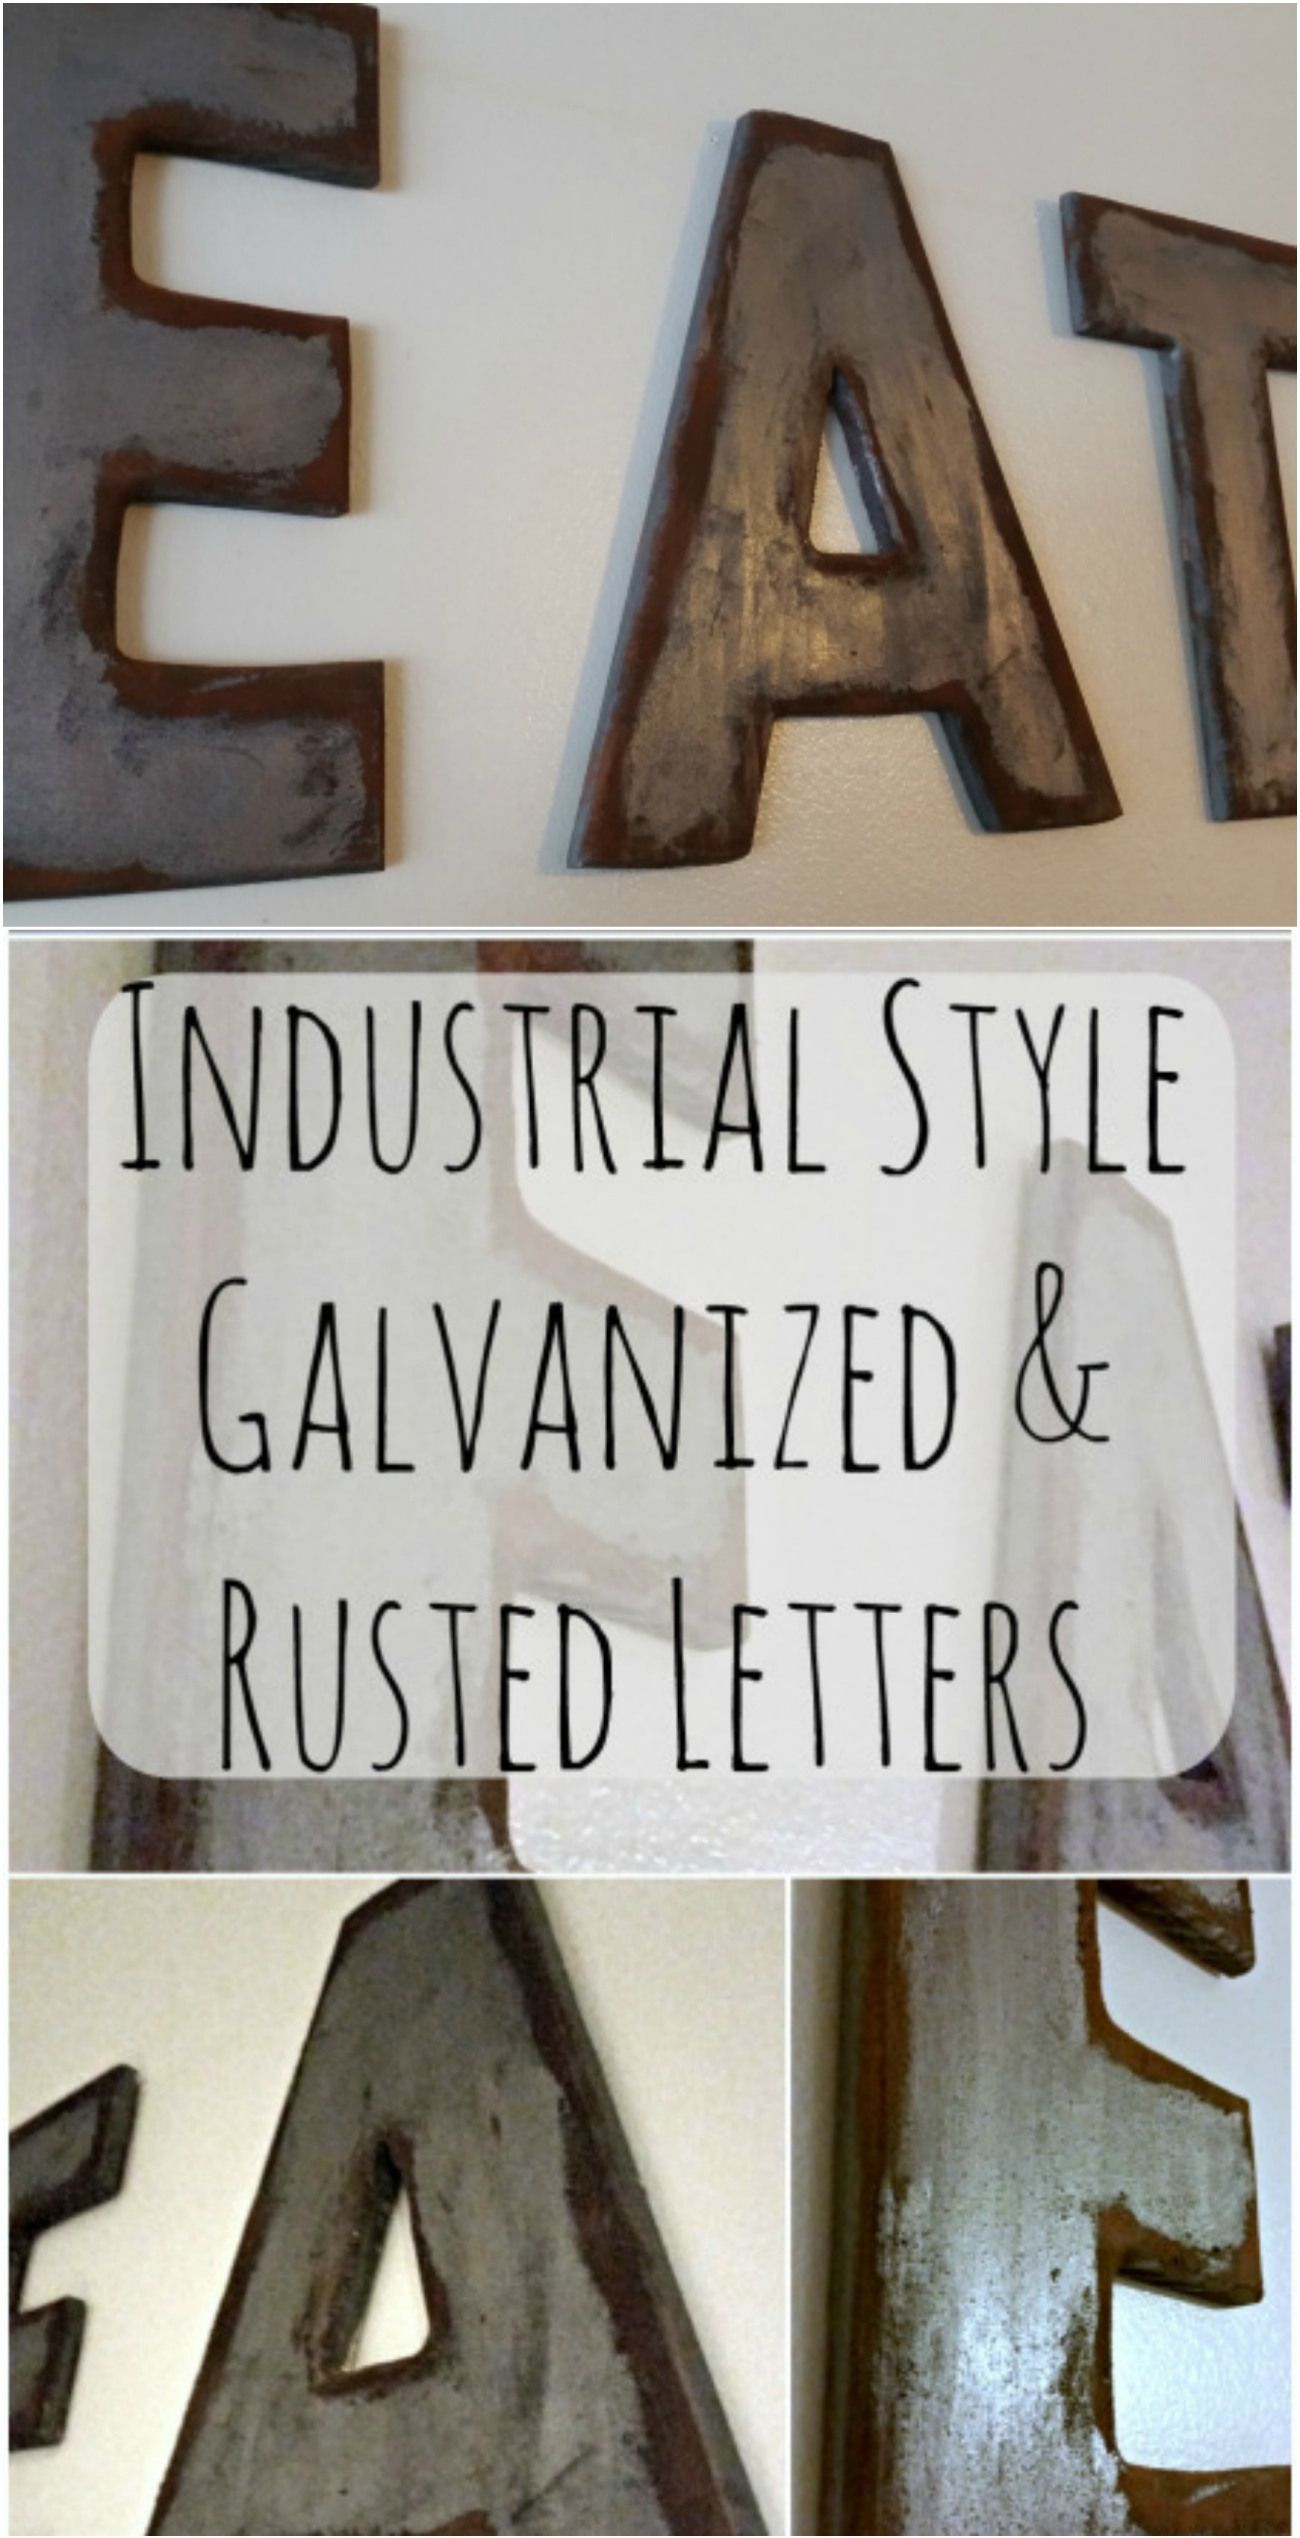 Wood & Galvanized Metal Letter Industrial Style Galvanized & Rusted Letters  Rustic Wall Decor